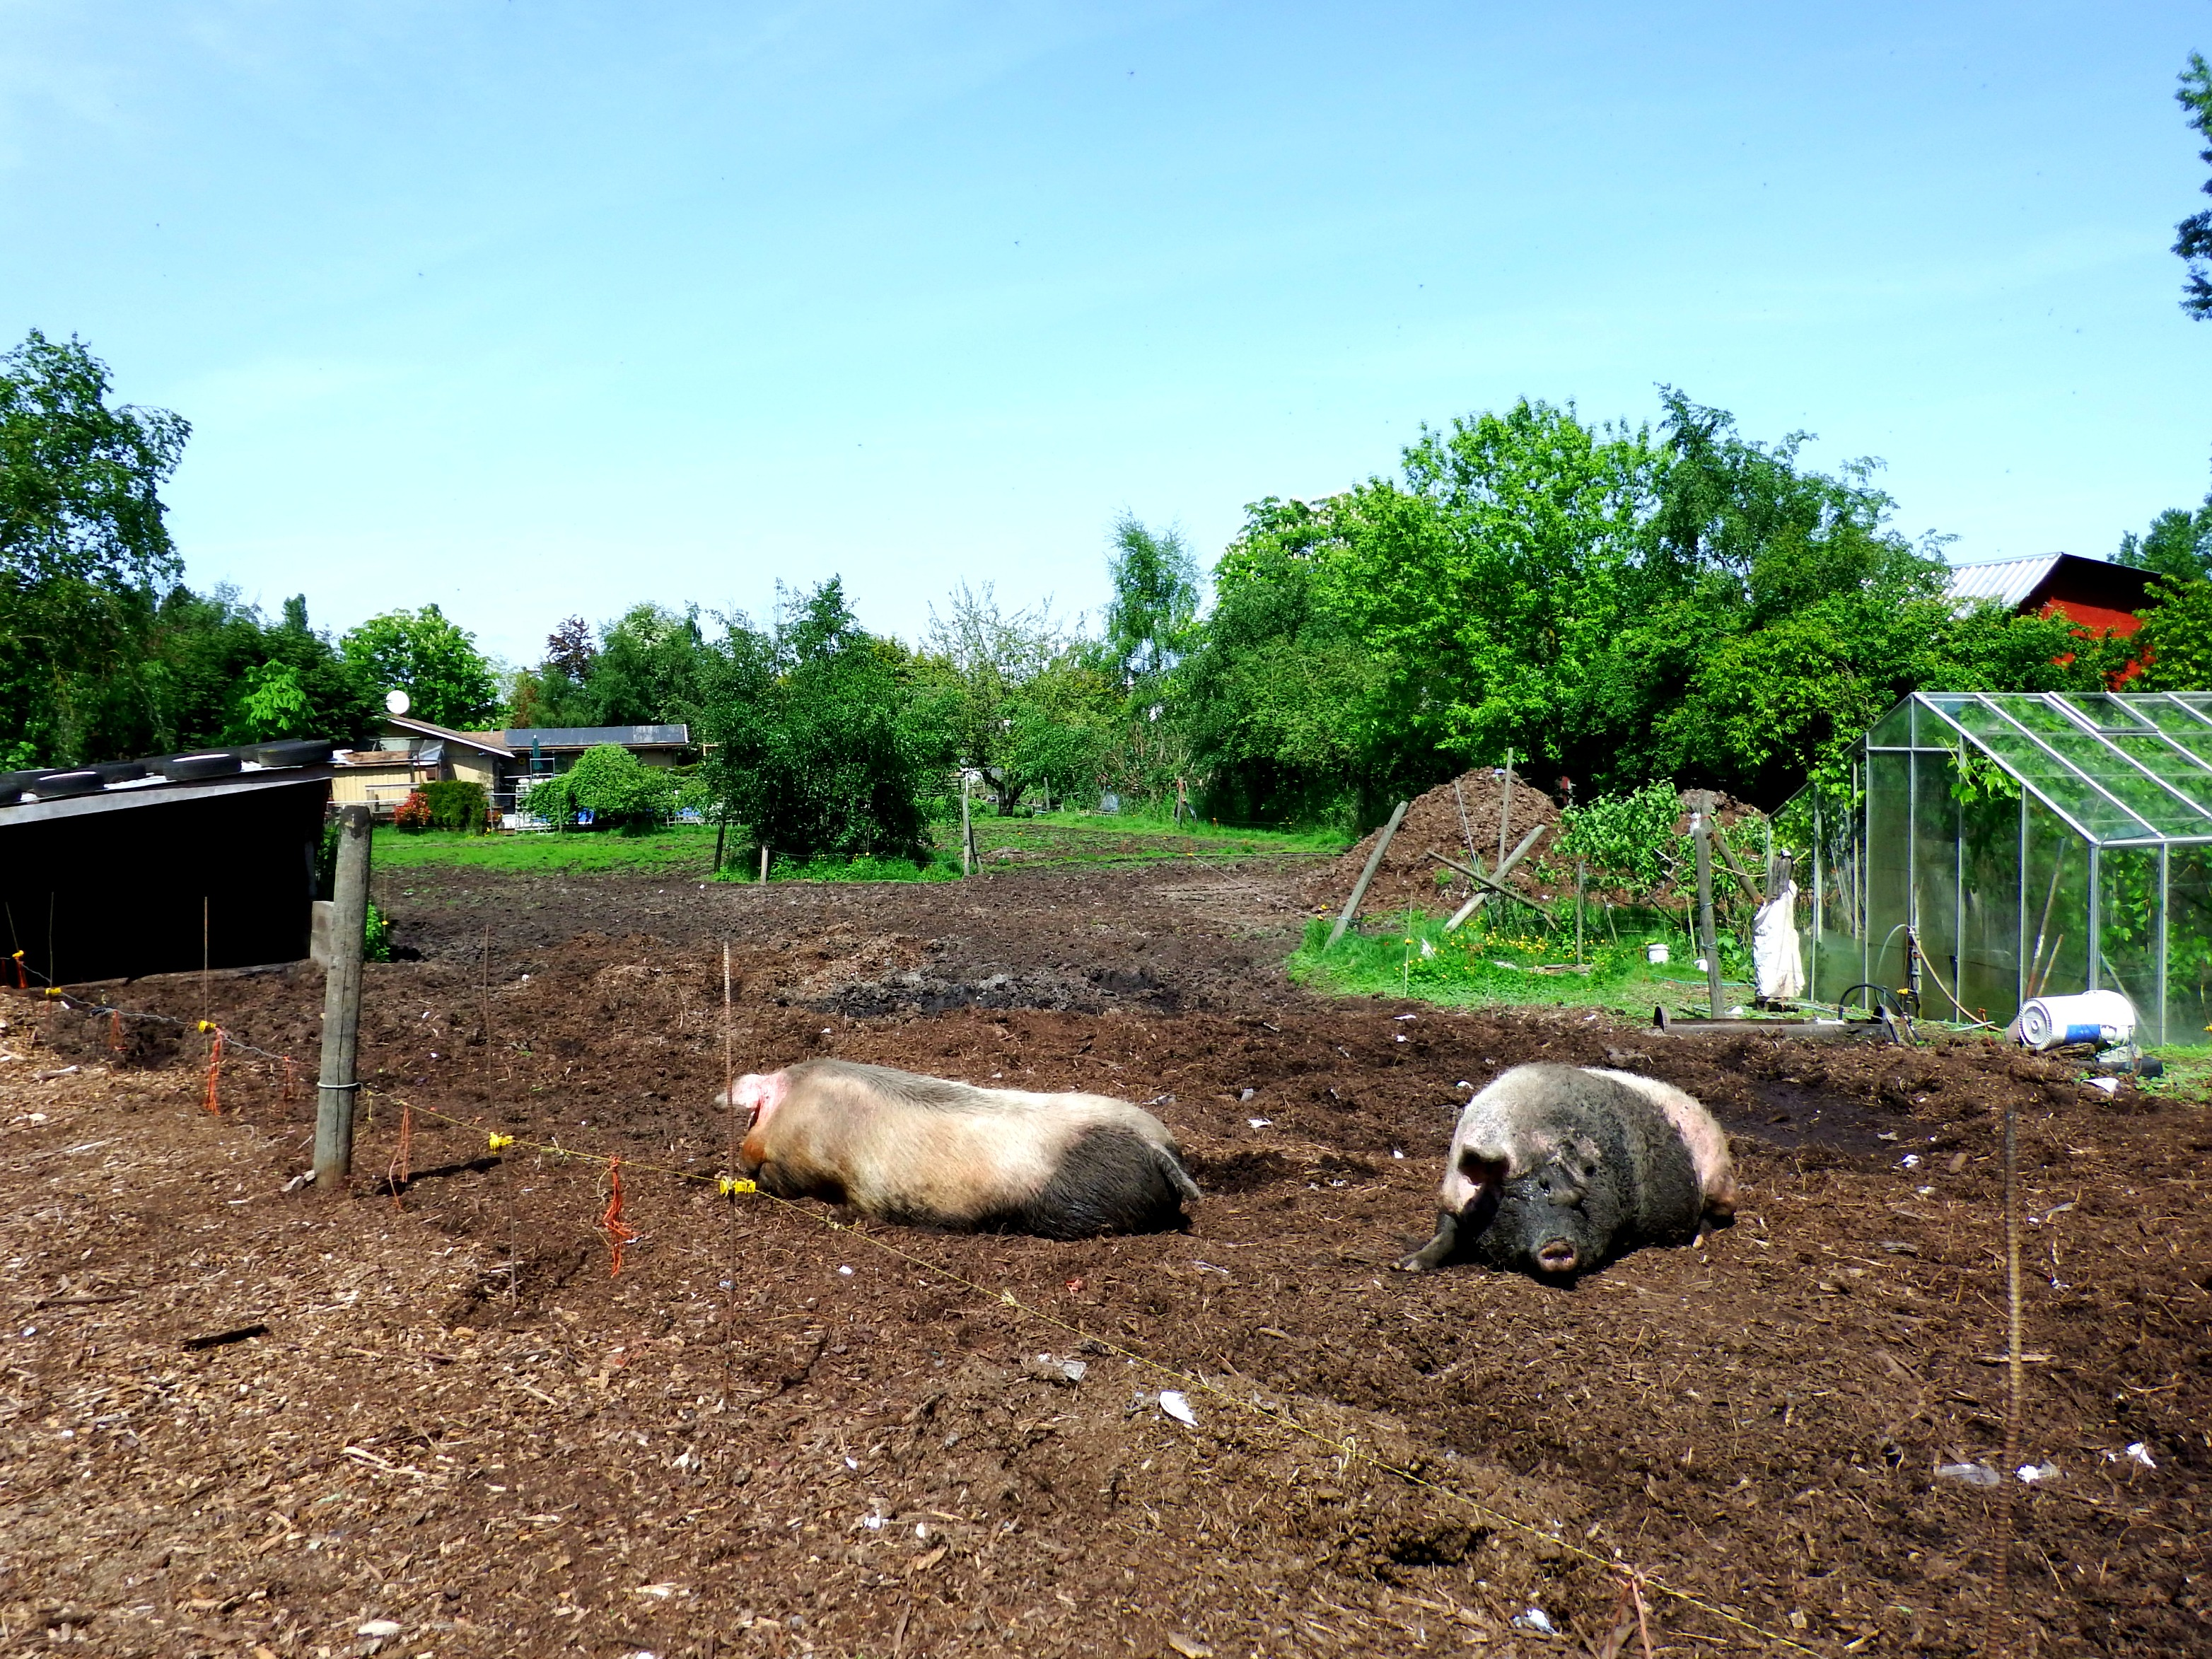 Scenes along Lochside Trail - the biggest pigs I have ever seen!